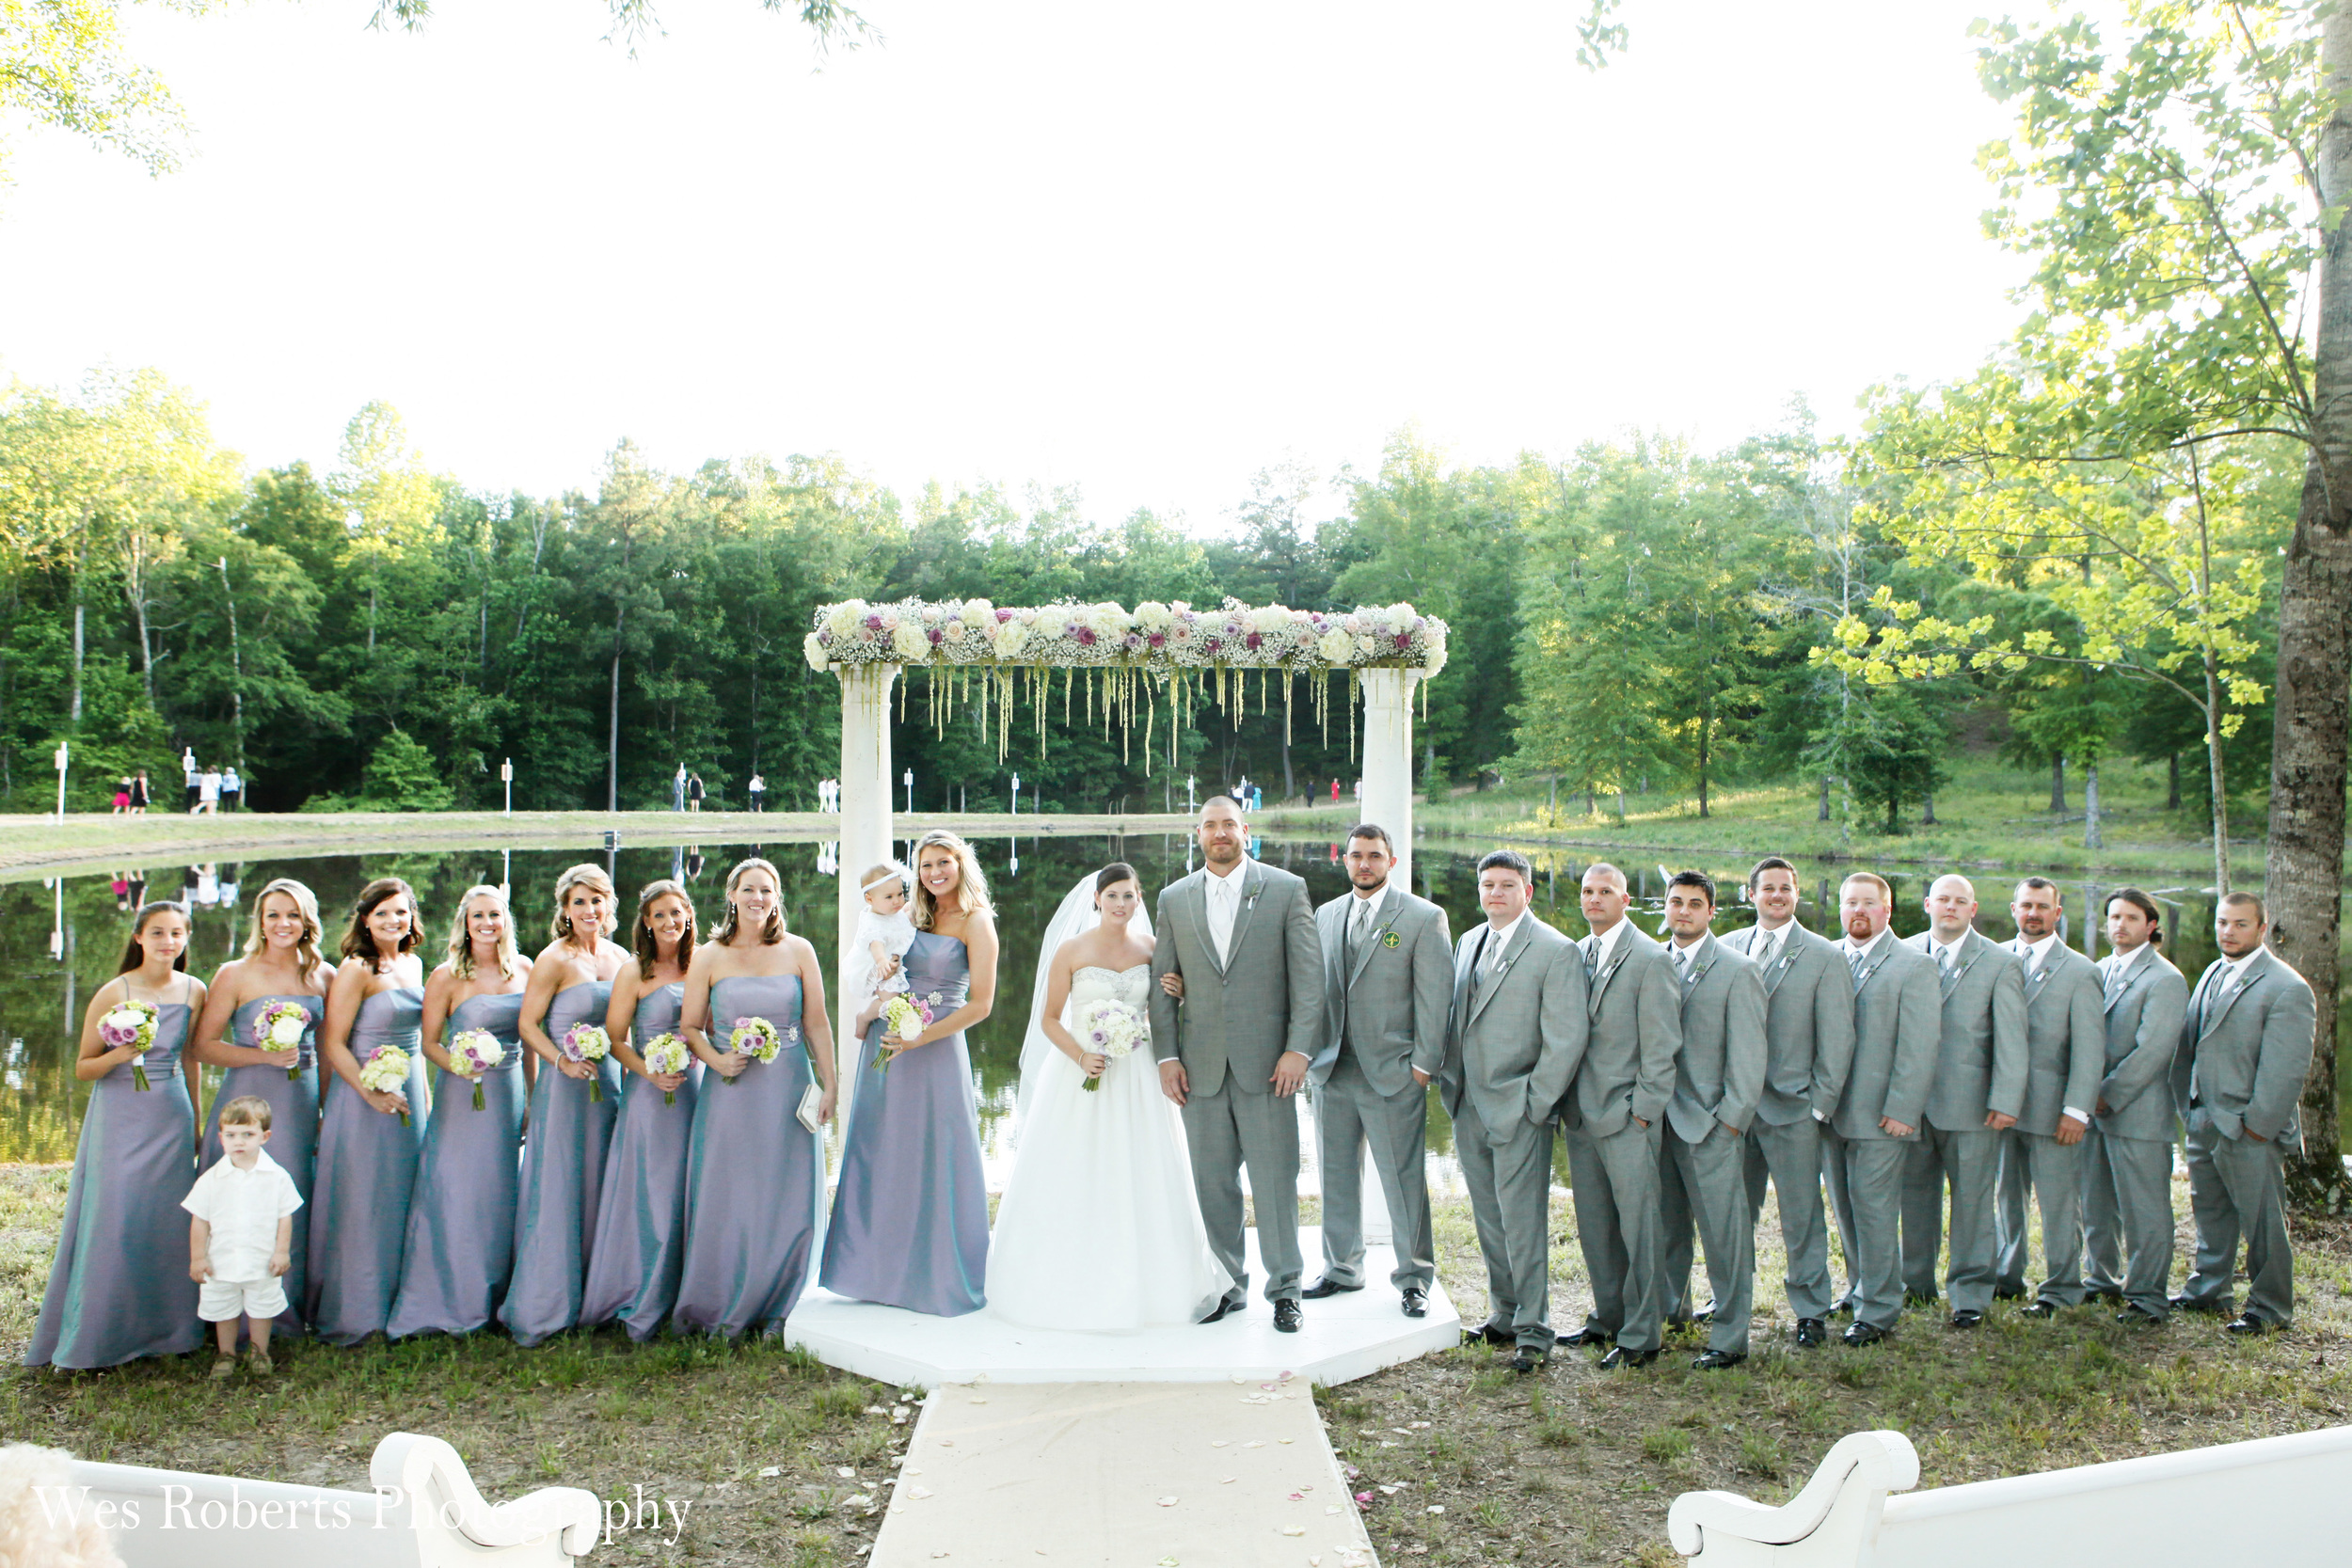 On April 28, 2012, we held our first wedding at Pisgah Hill. Our great friends John and Lacy exchanged vows in front of the big pond.